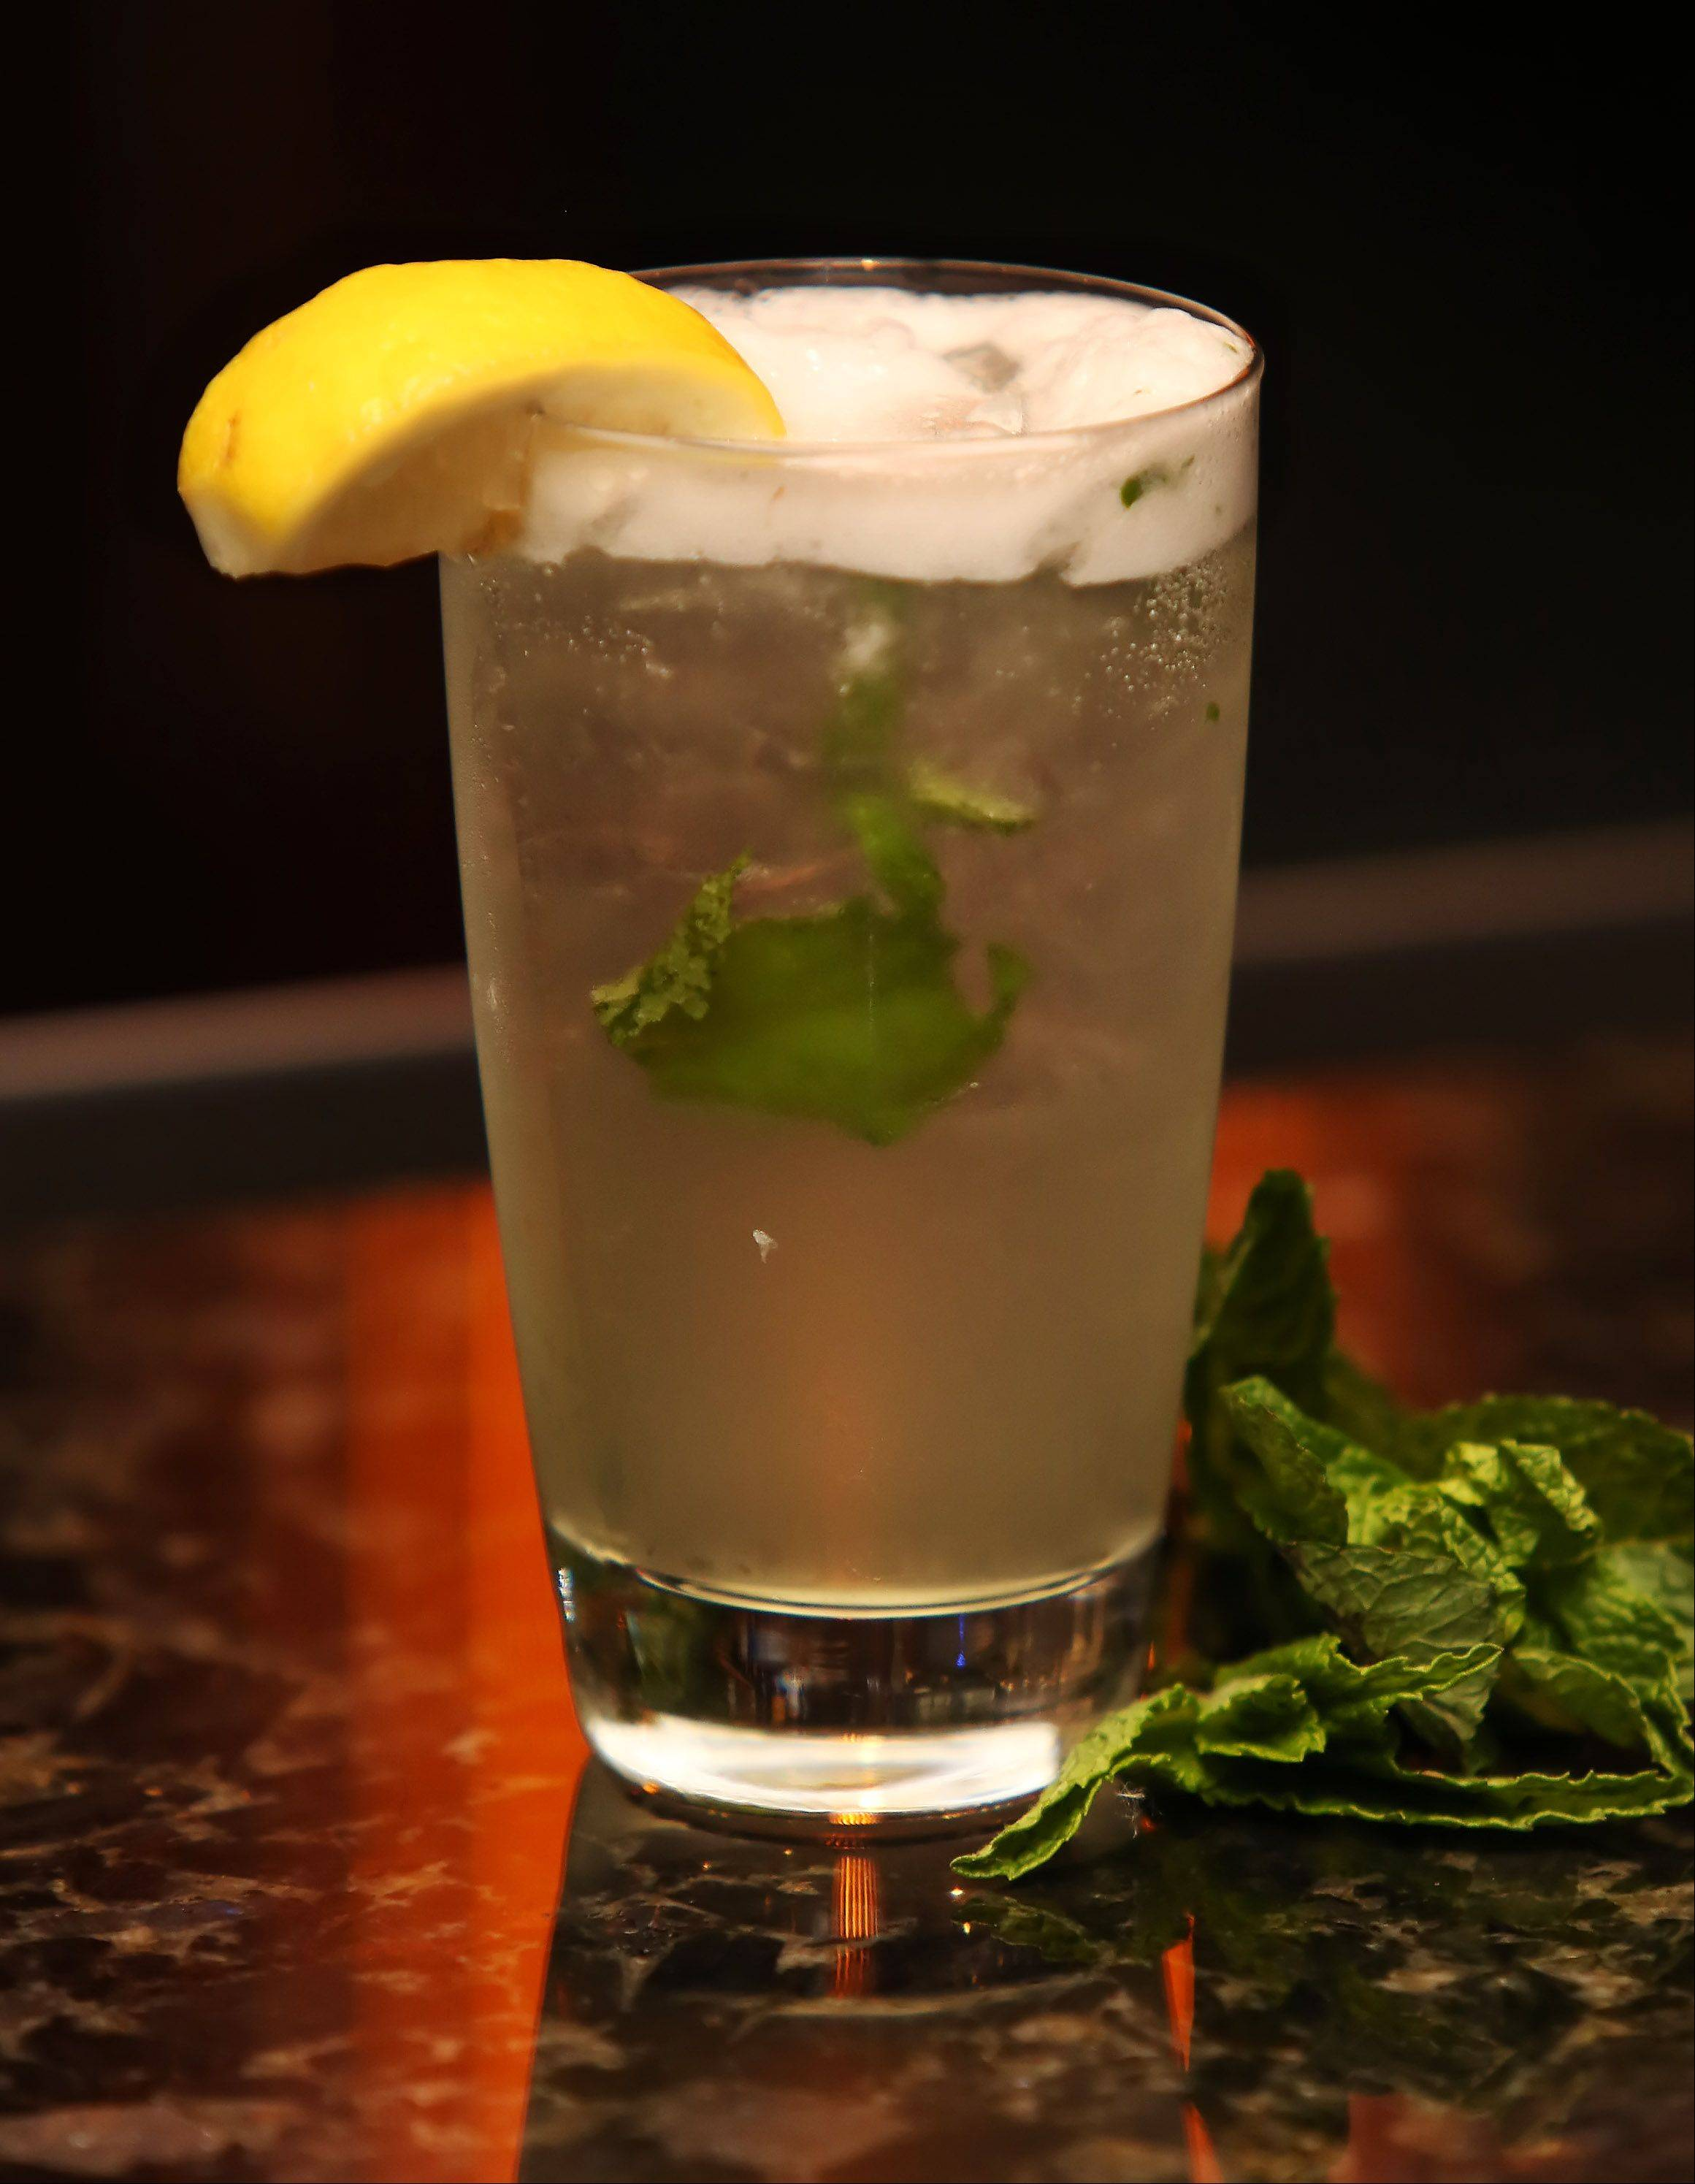 Spiked mint lemonade will debut in mid-June at Sullivan's Steakhouse in Lincolnshire.